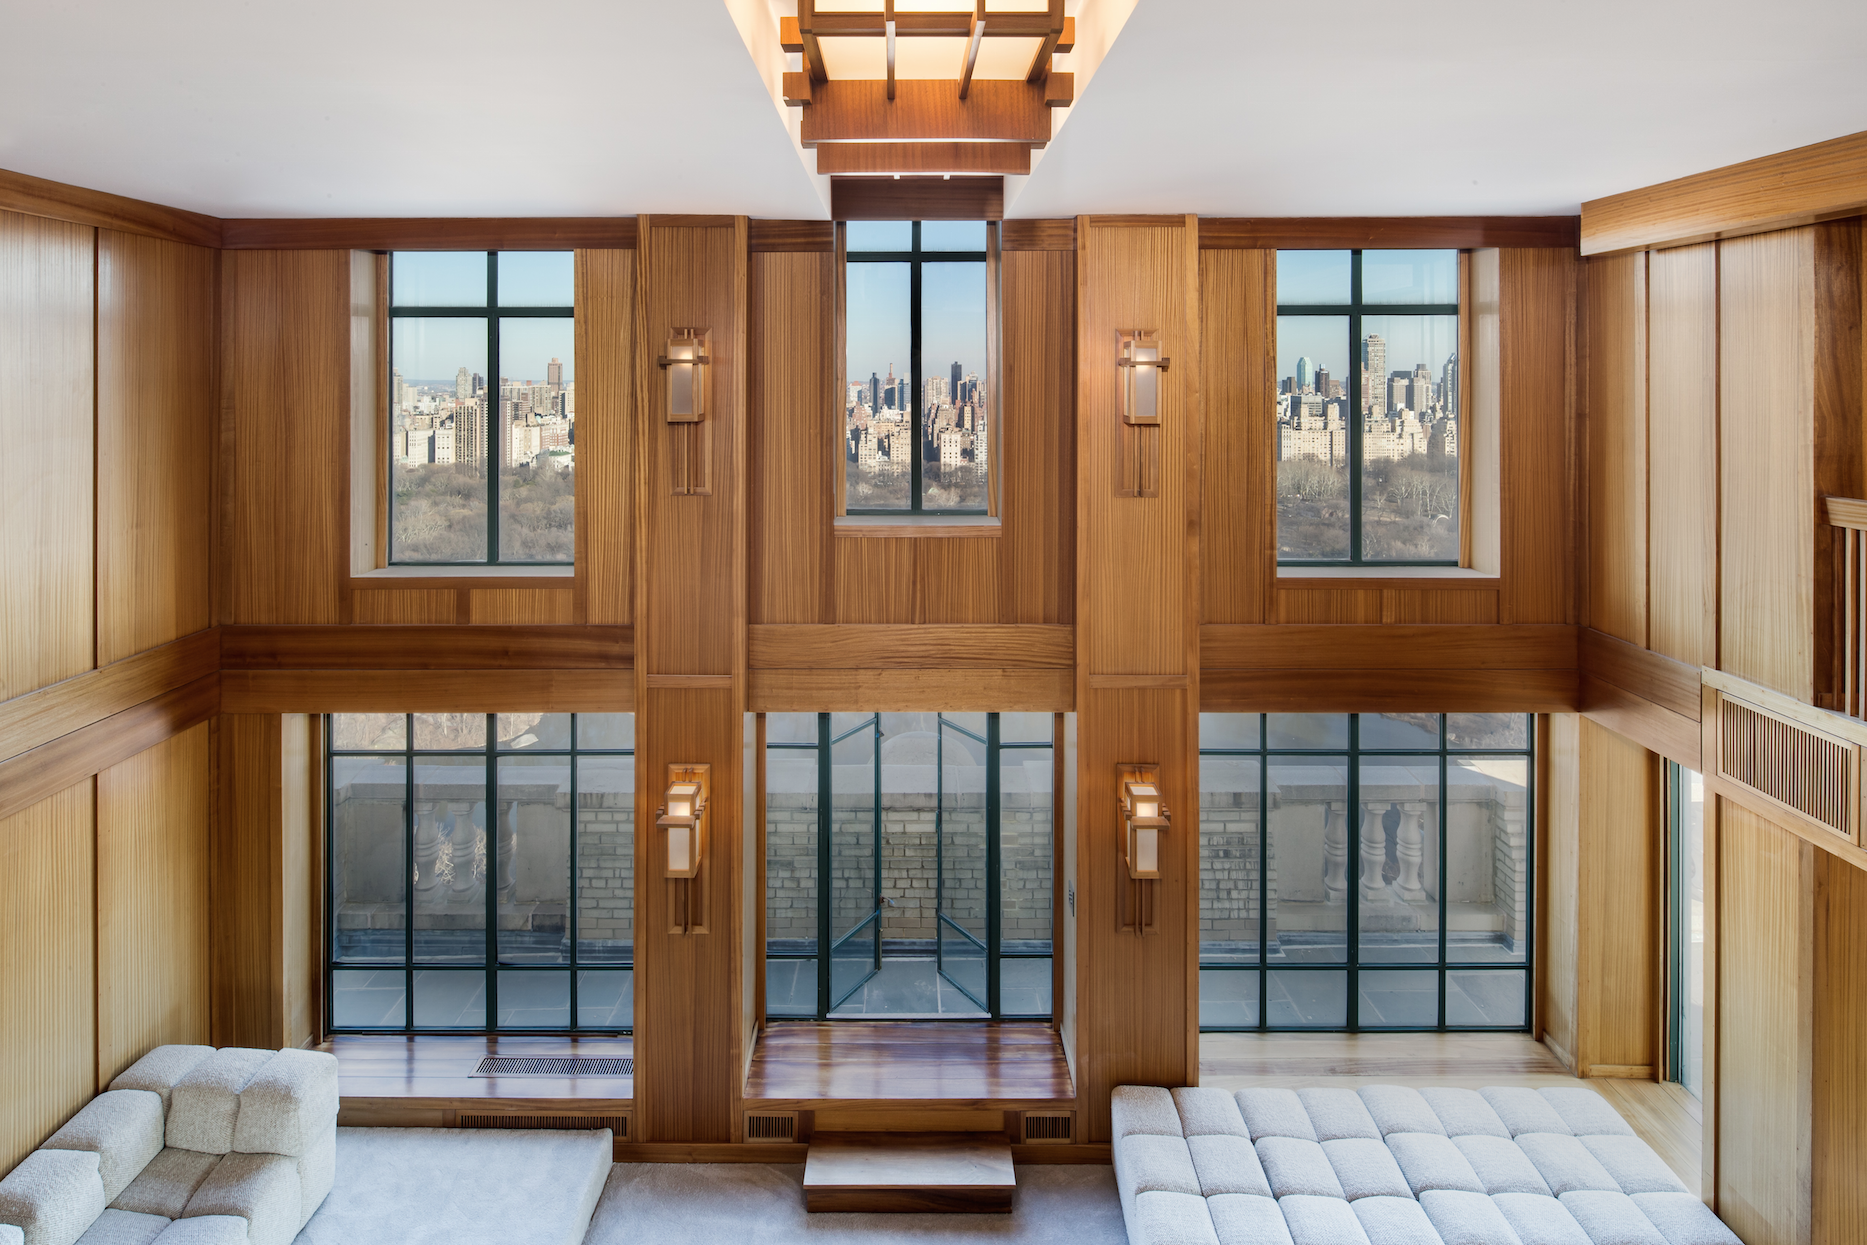 Demi Moore's New York Penthouse Finally Sold for $45 Million demi moore Demi Moore's New York Penthouse Finally Sold for $45 Million You Can Now Purchase Demi Moores San Remo Penthouse for 45 Million 3